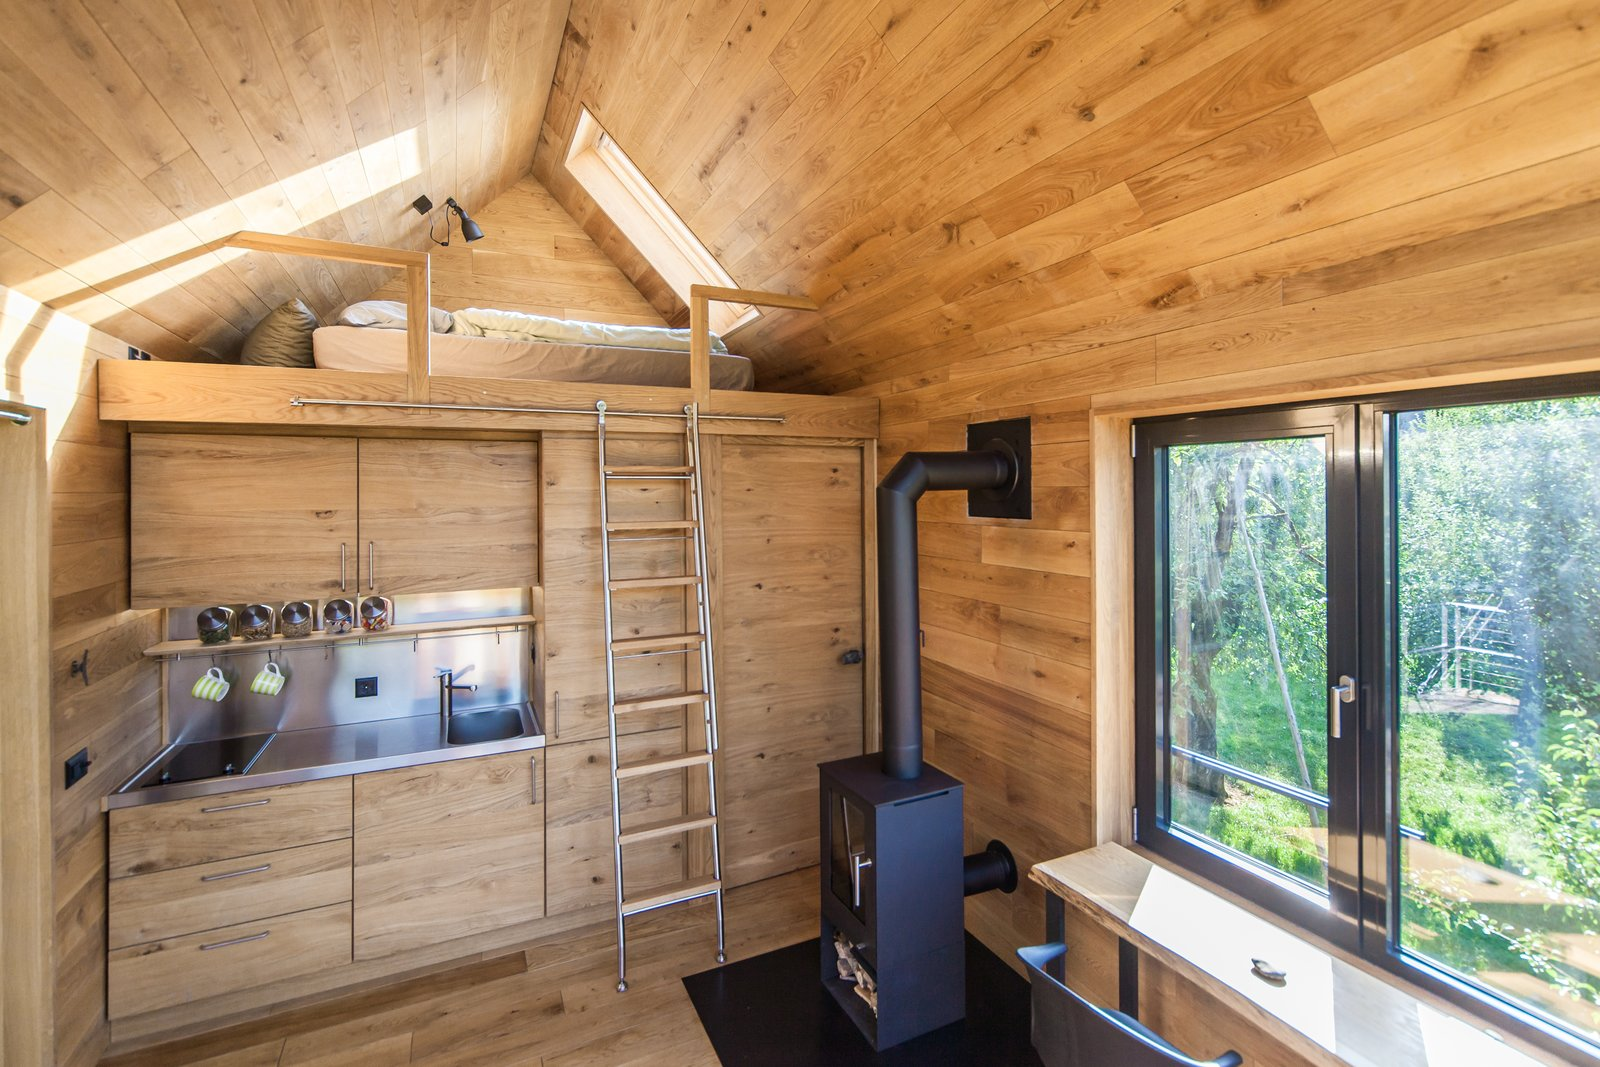 Baumhaus tree house kitchen and sleeping loft